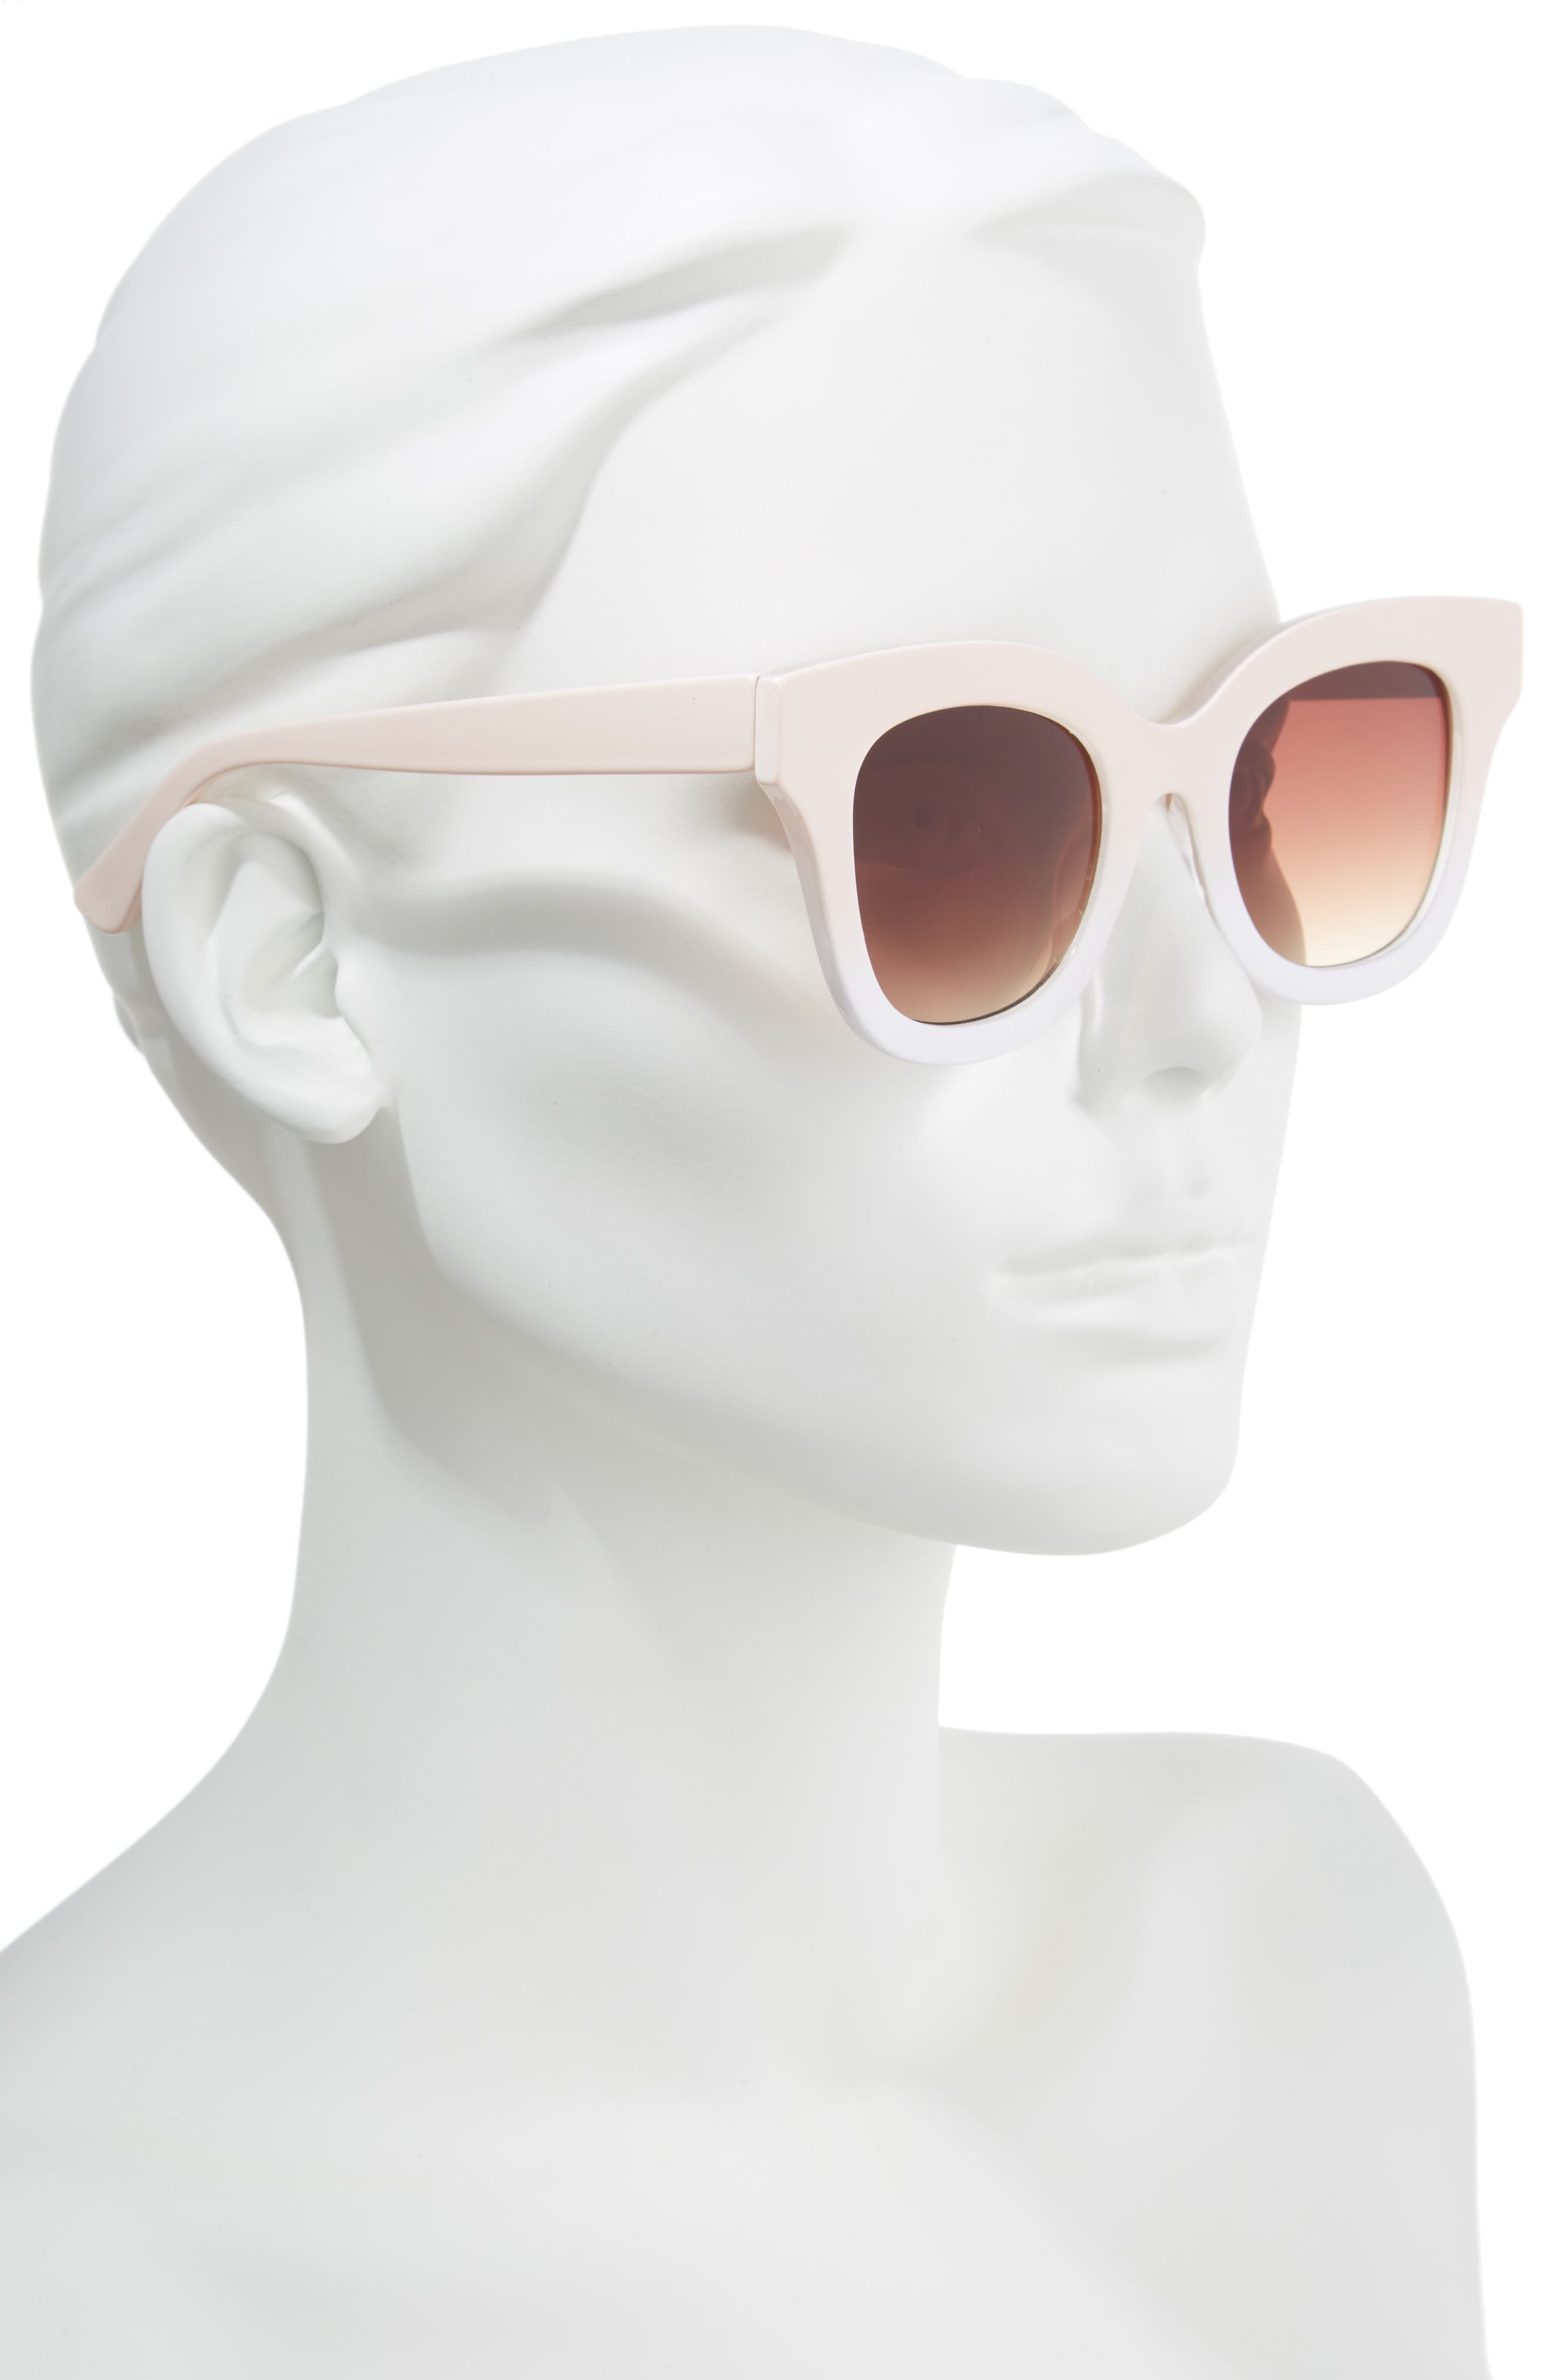 50mm Ombré Square Sunglasses,                             Alternate thumbnail 2, color,                             650